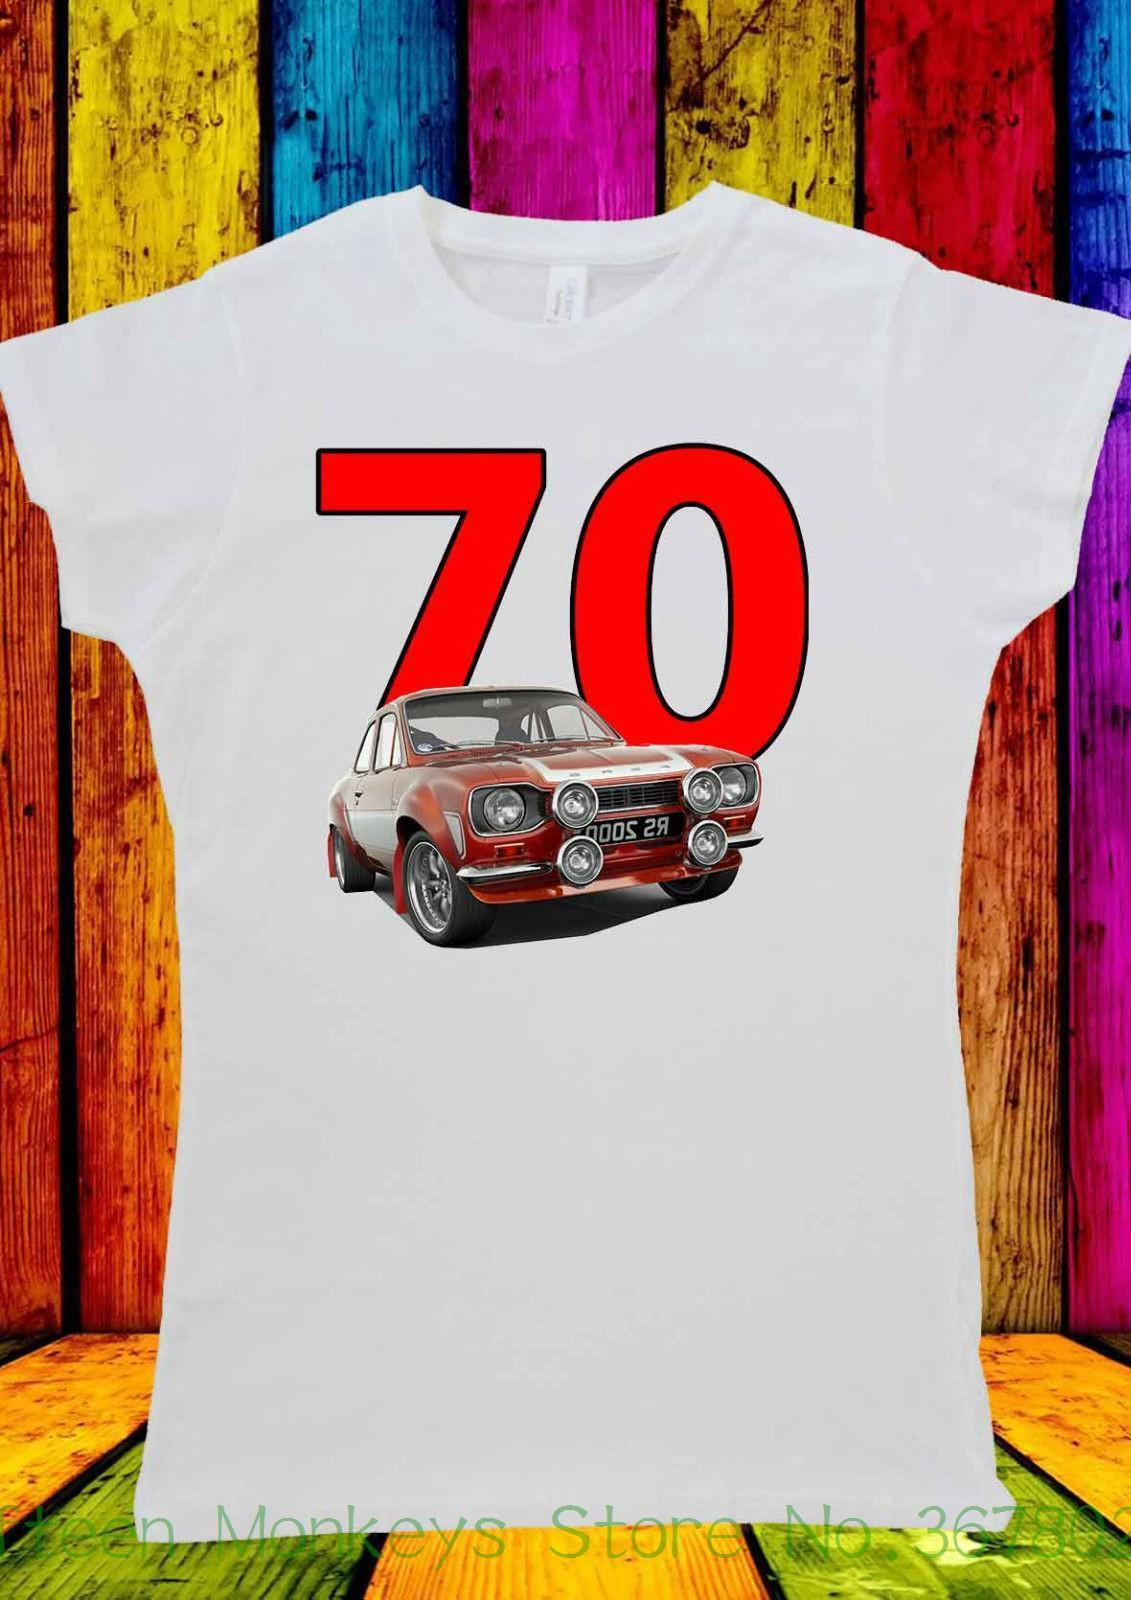 06282a639 Women'S Tee Mk1 Escort Mexico 70'S Retro Vintage T Shirt Men Women Unisex  628 For Lady Hip Hop Tee Shirt Women T Shirt Sale Cool Shirt Designs From  Jie70, ...